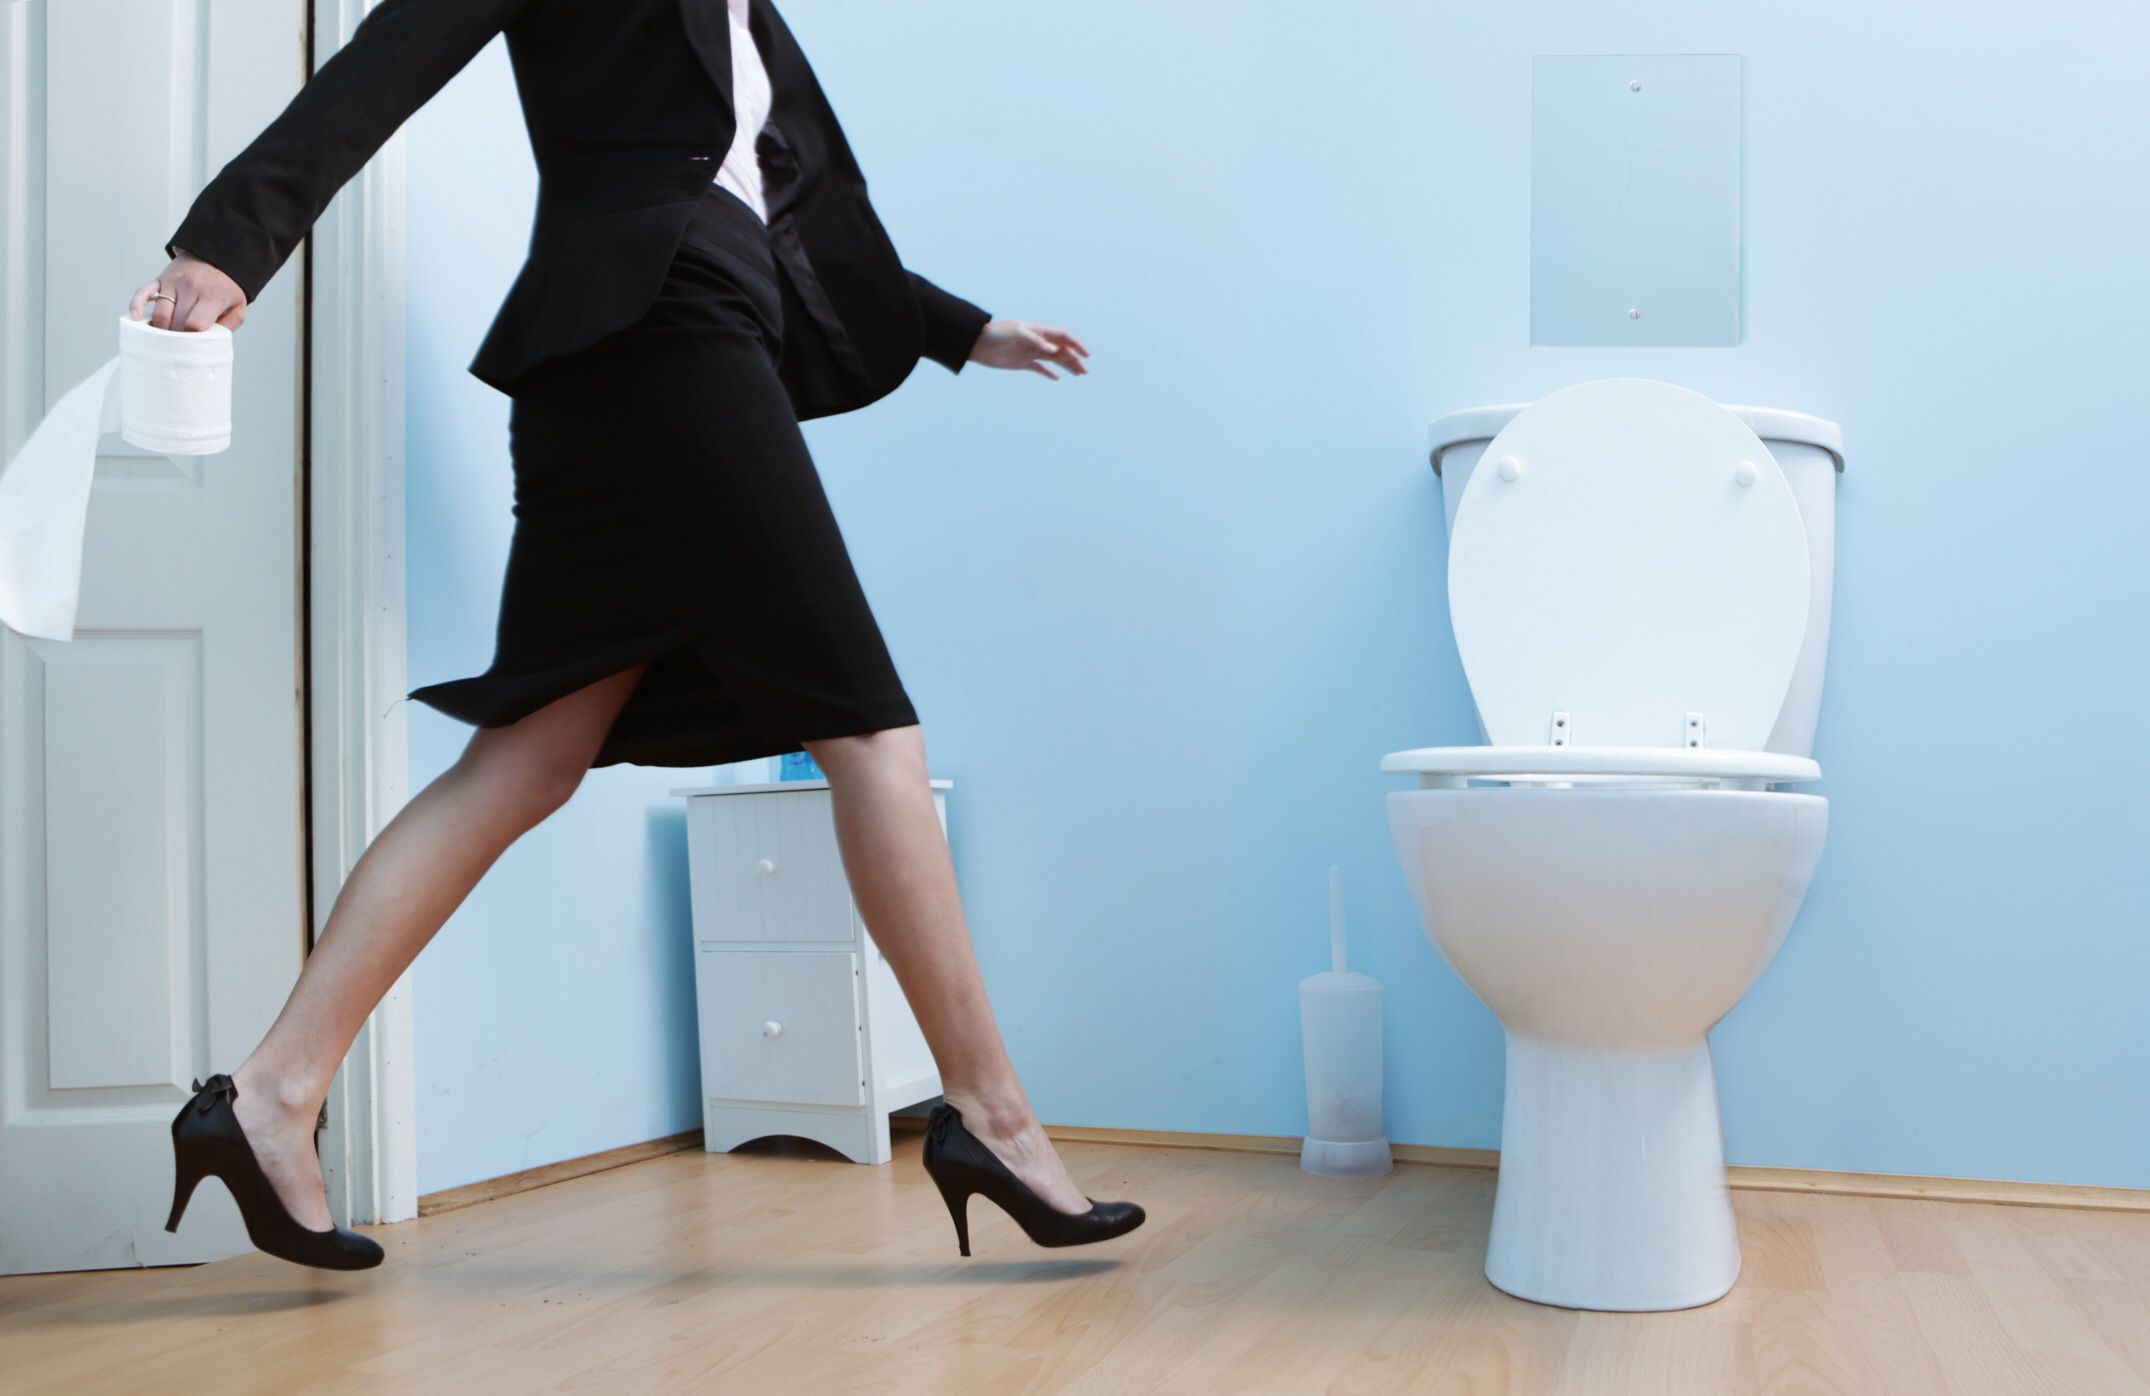 Photo of a woman running to potty.